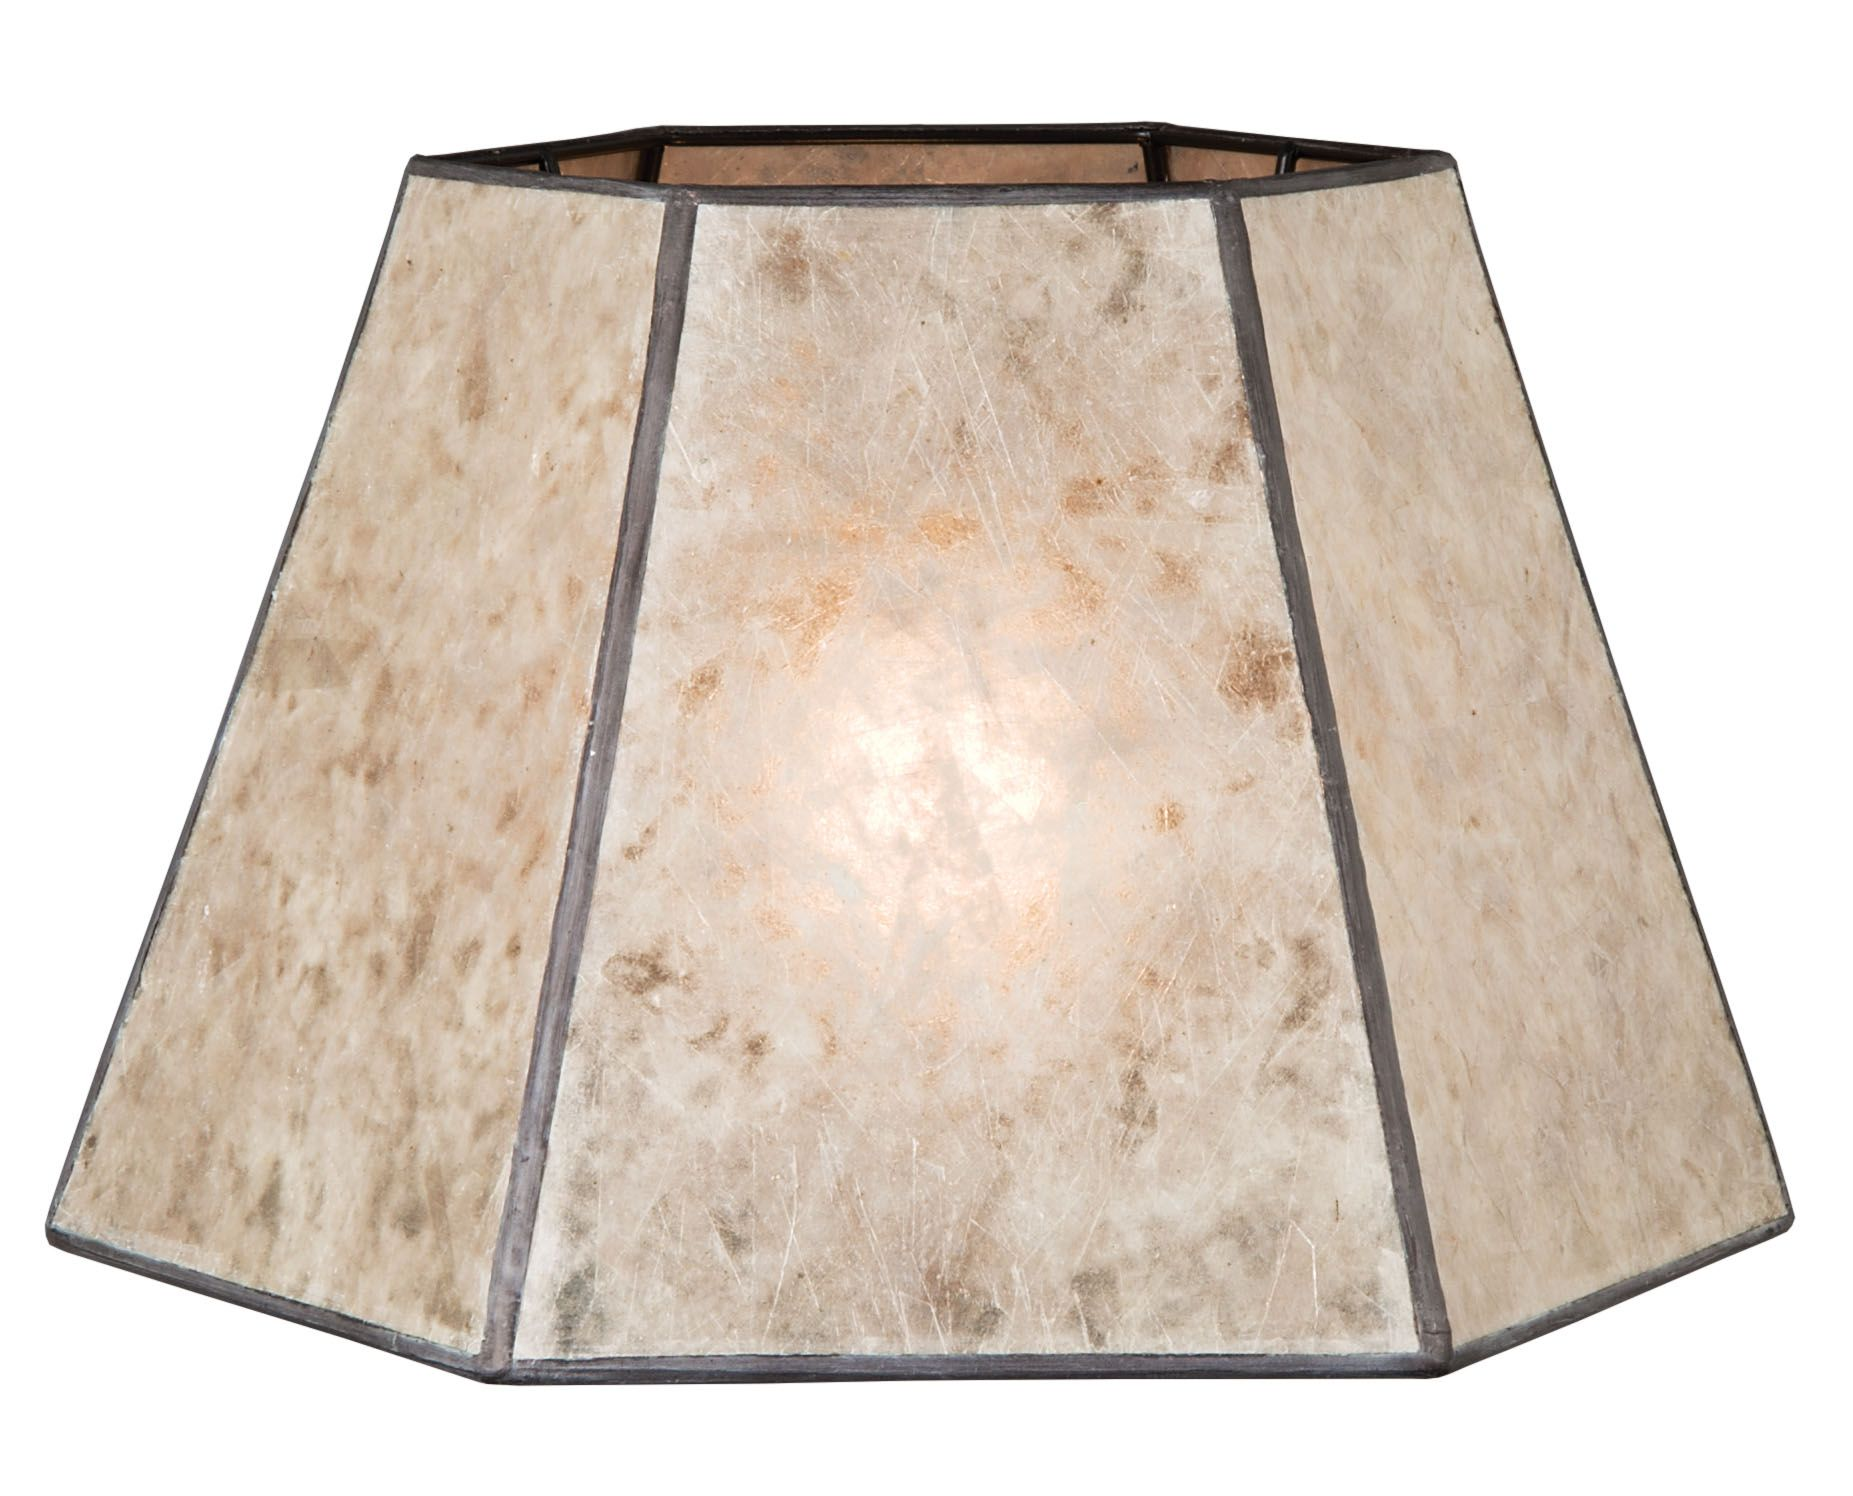 Mica Lamp Shade Impressive Parchment Color Hexagon Style Mica Lampshade  Antique Lamp Supply Inspiration Design